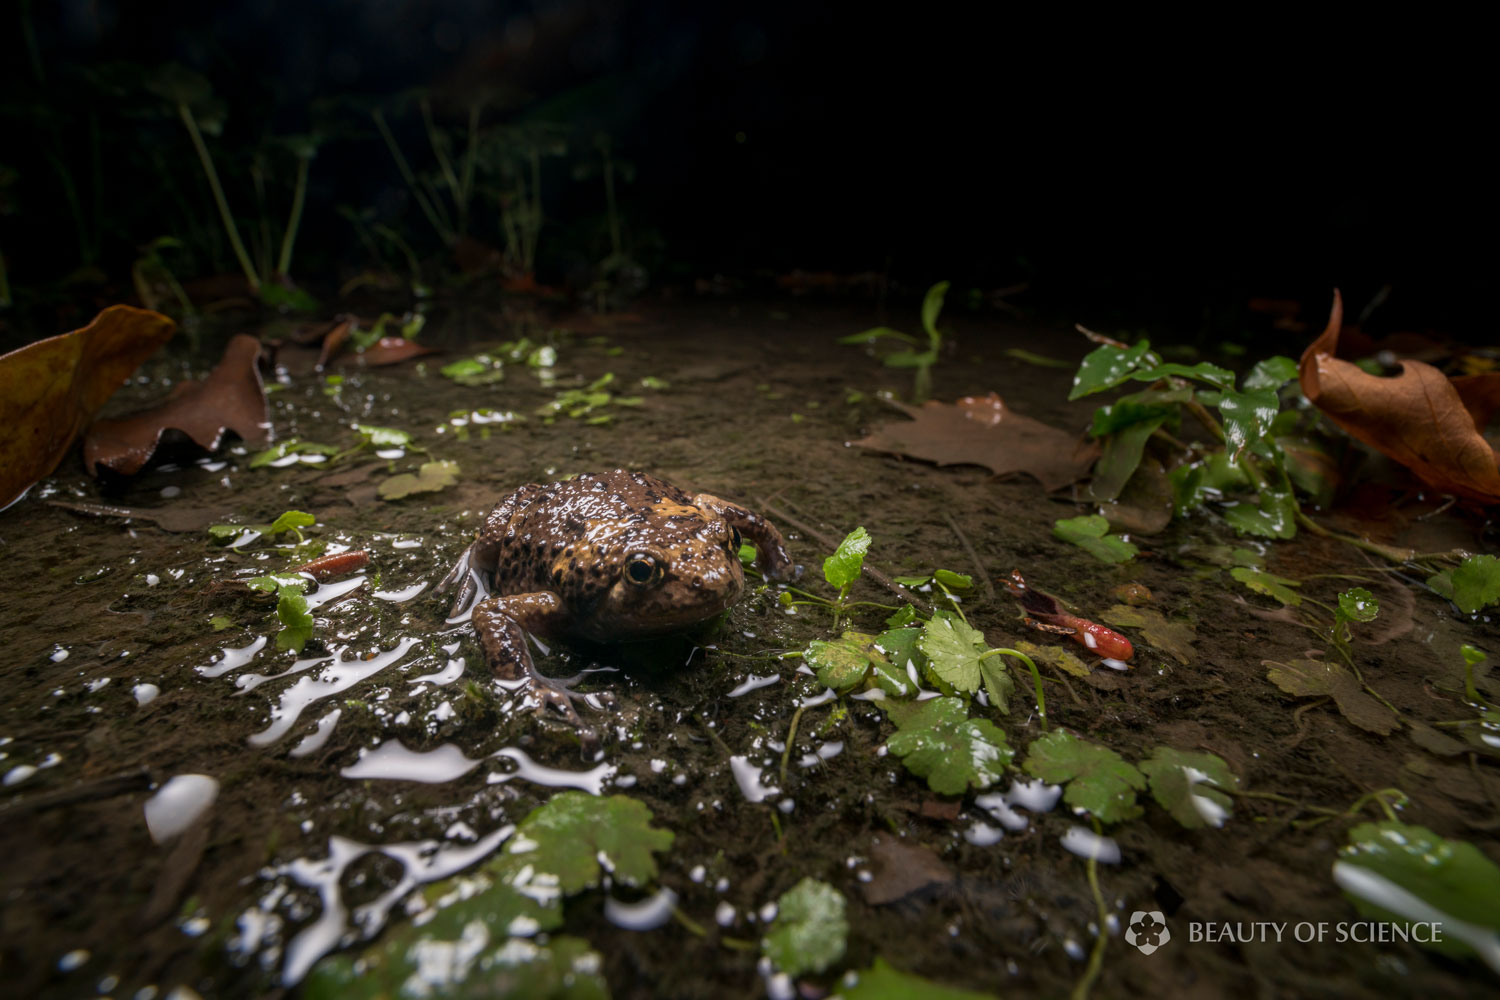 sichuan-narrow-mouthed-frog-habitat-07.jpg